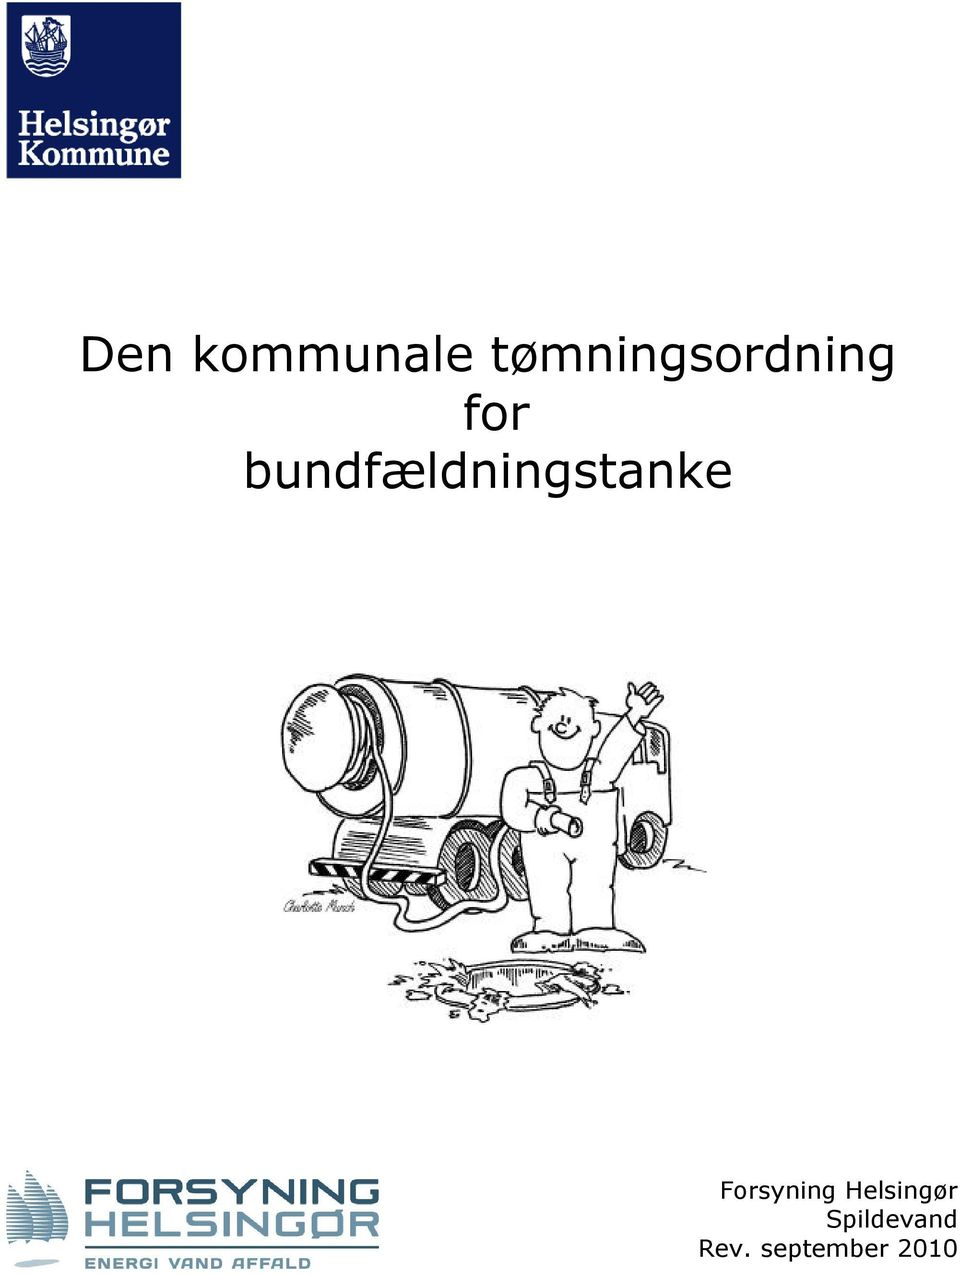 bundfældningstanke